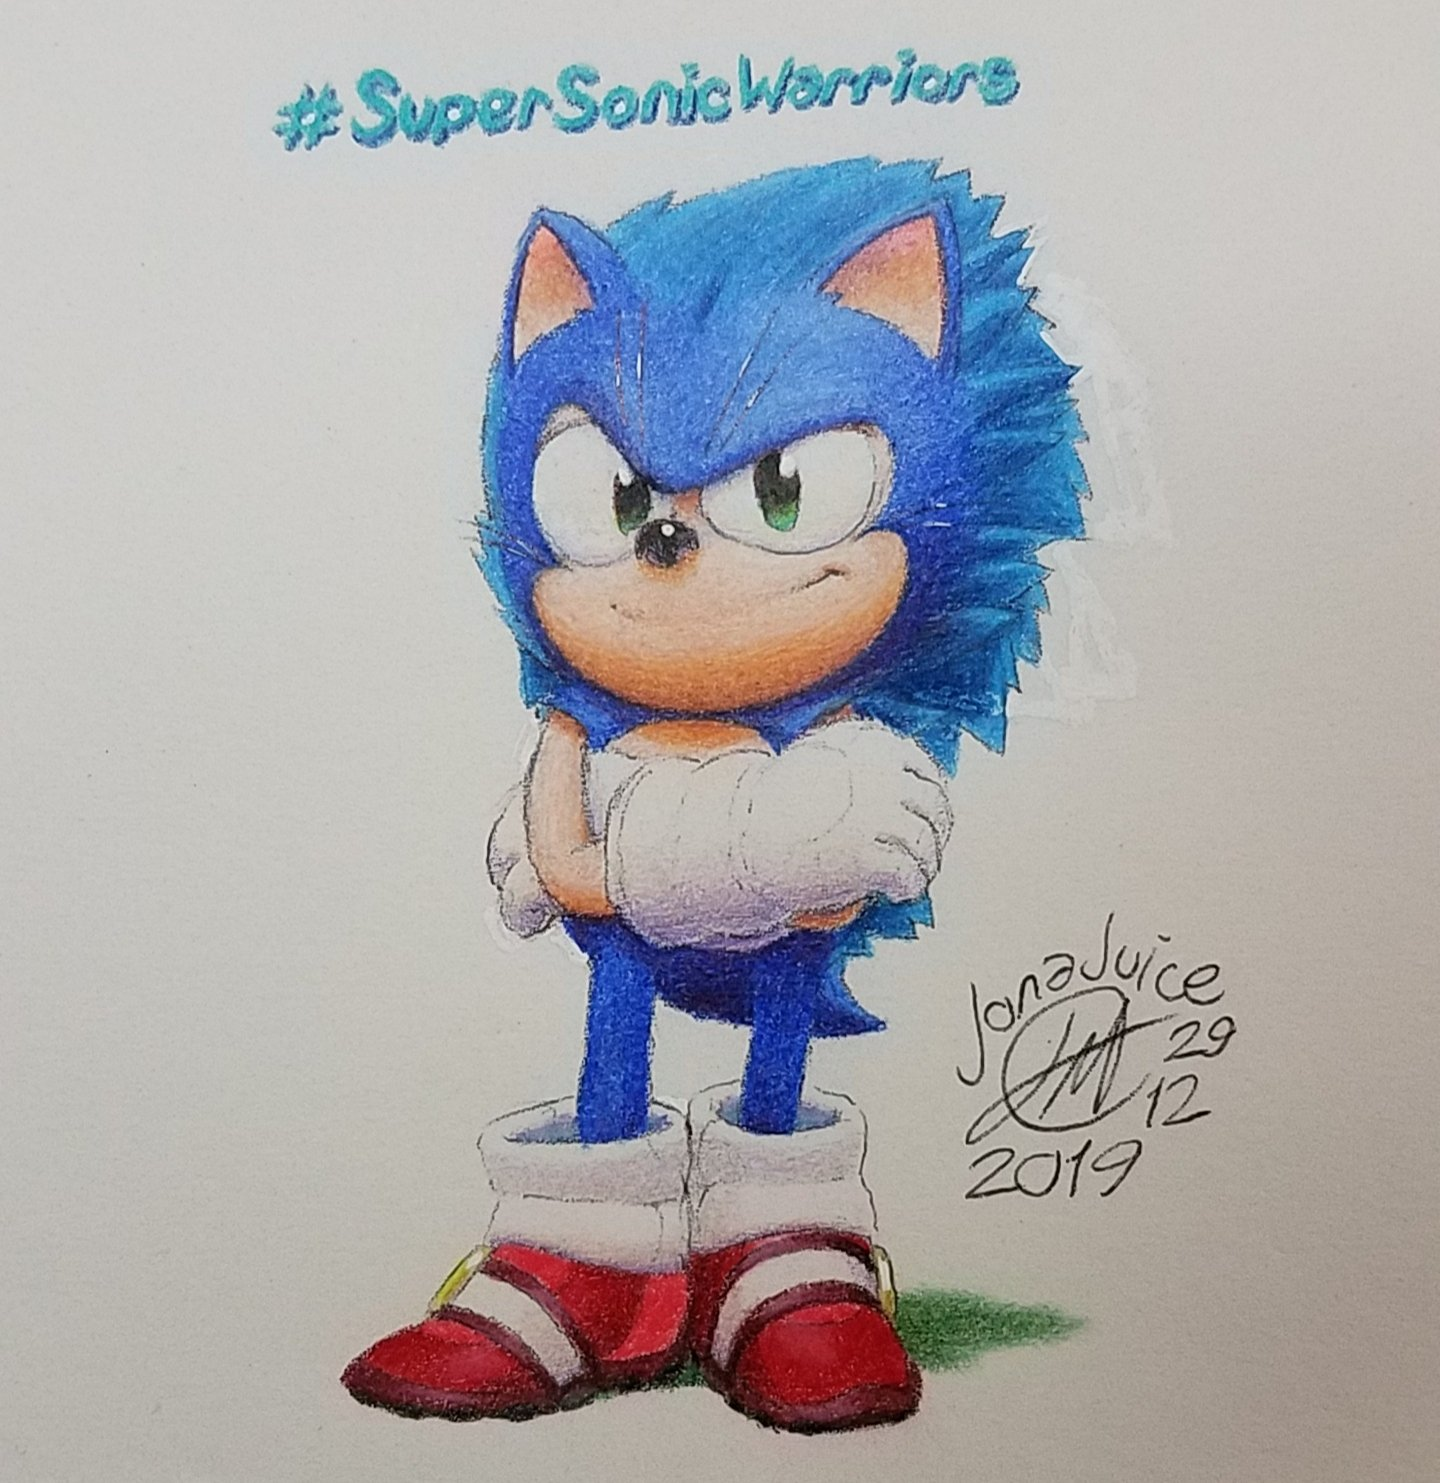 Super Sonic Warriors Tm On Twitter Little Colored Sketch Of My Sonicneedlemouse I Drew For Fun Love How It Came Out Simplified Look As In Less Fur Detail